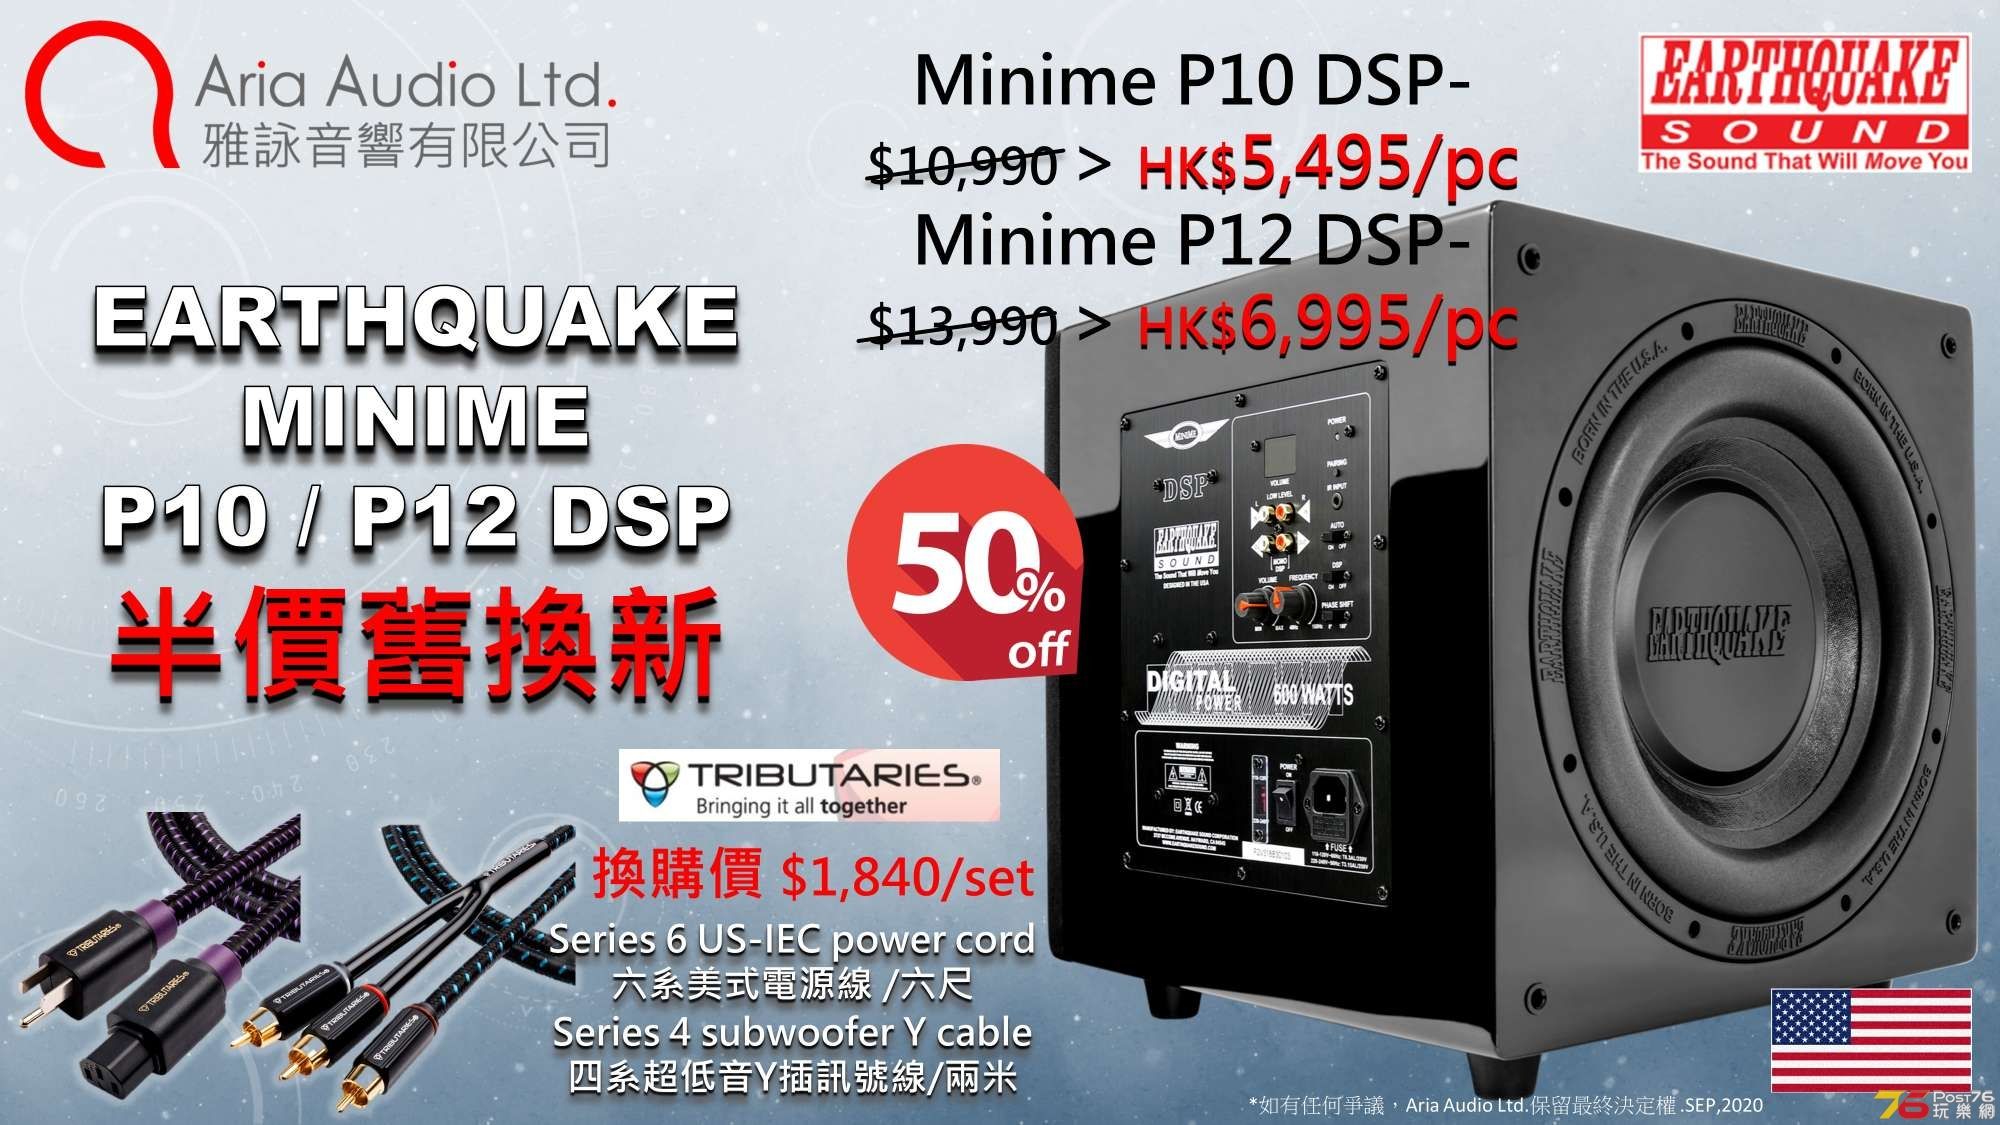 earthquake DSP promotion 50 off R2.jpg